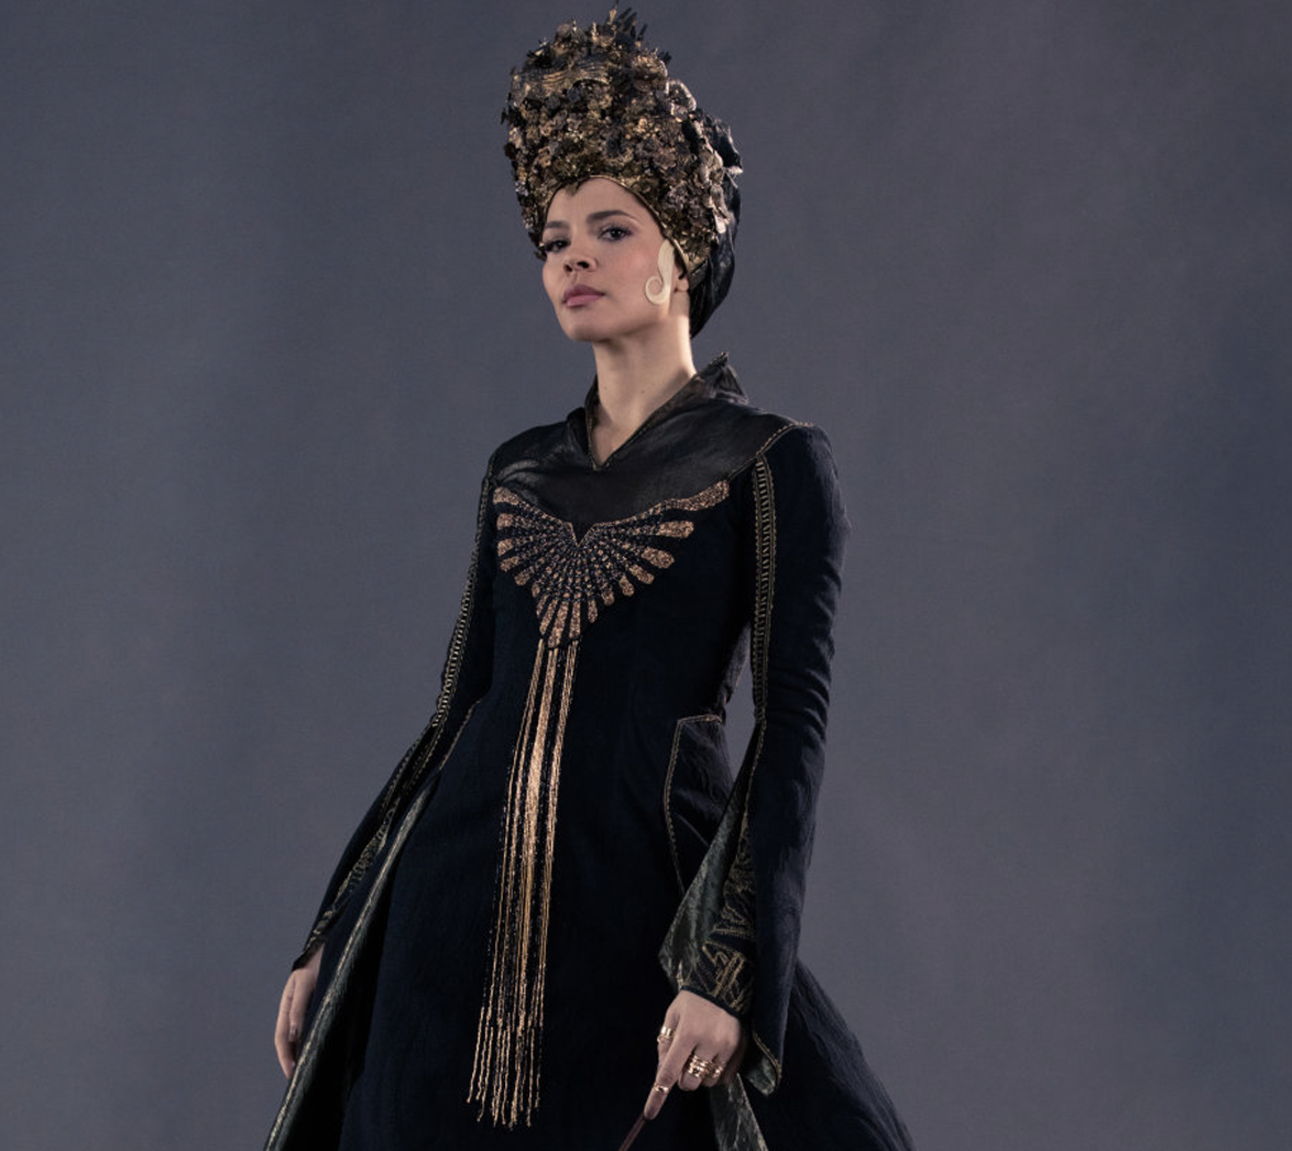 Seraphina Picquery from Fantastic Beasts